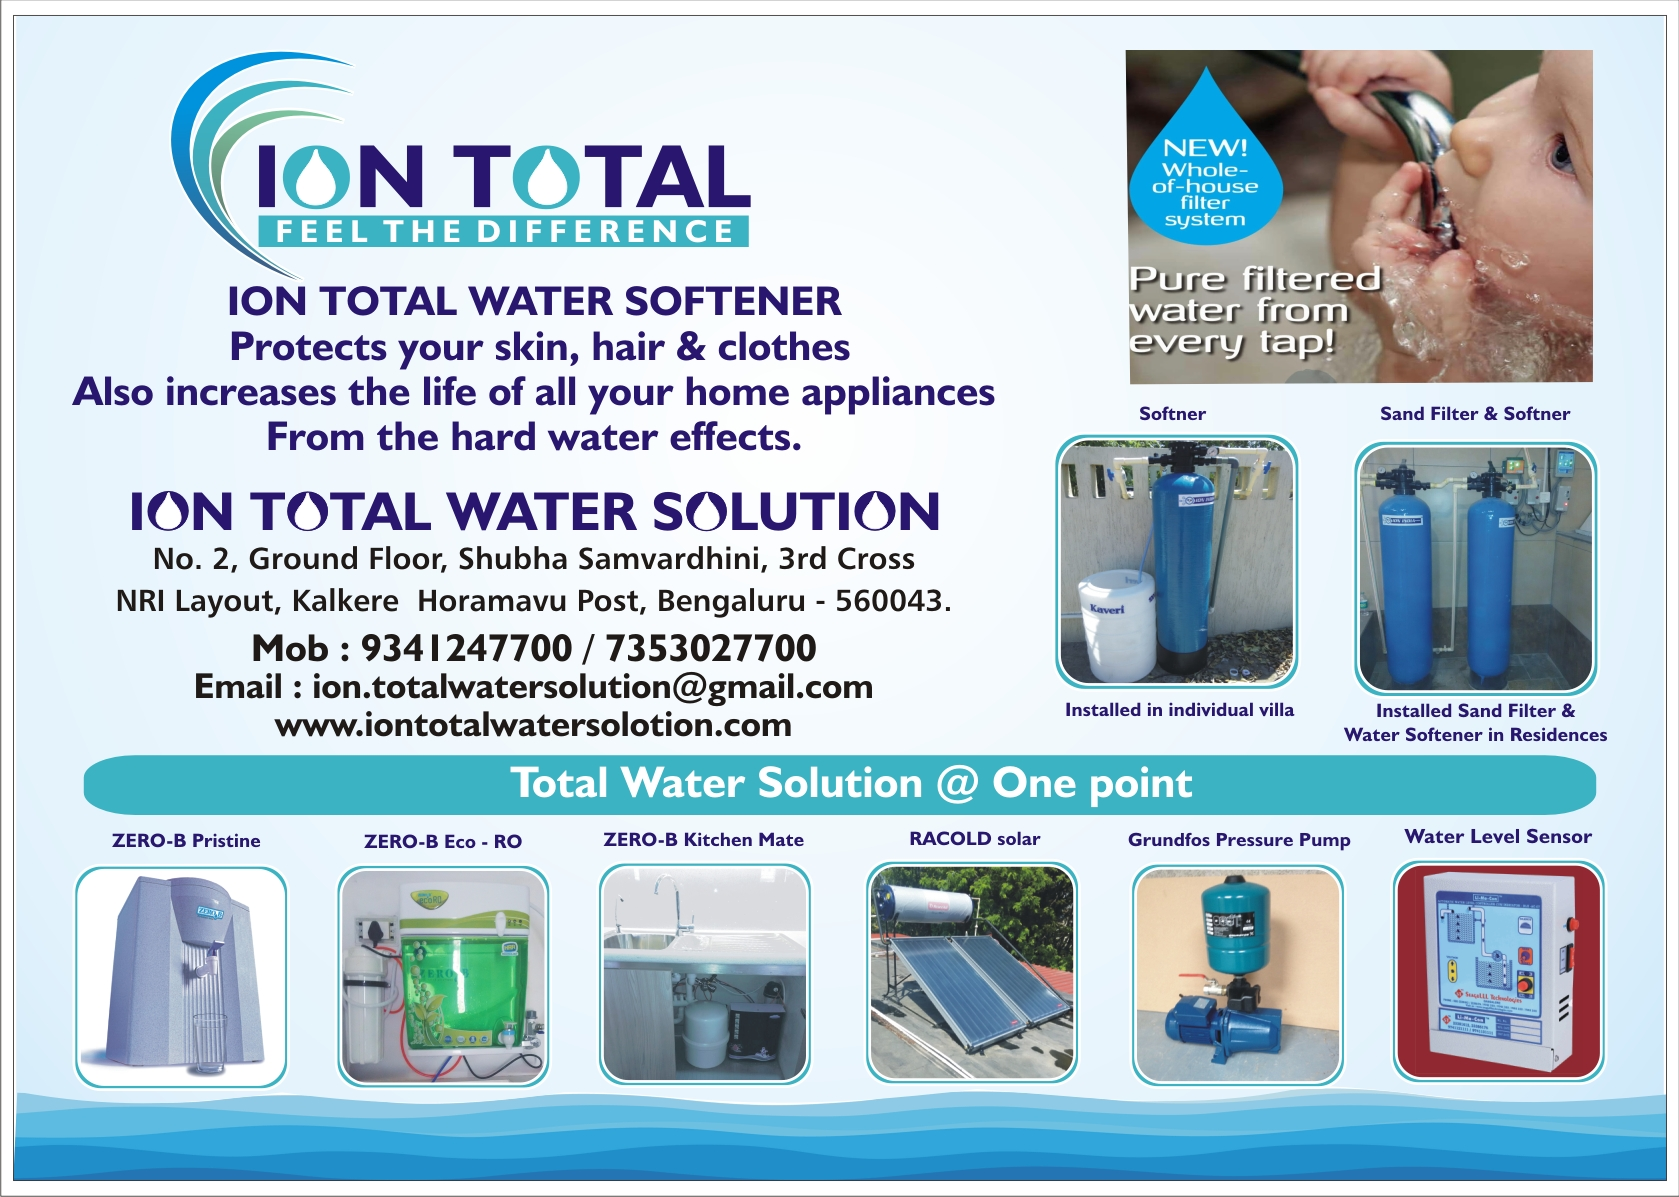 ION TOTAL WATER SOLUTION